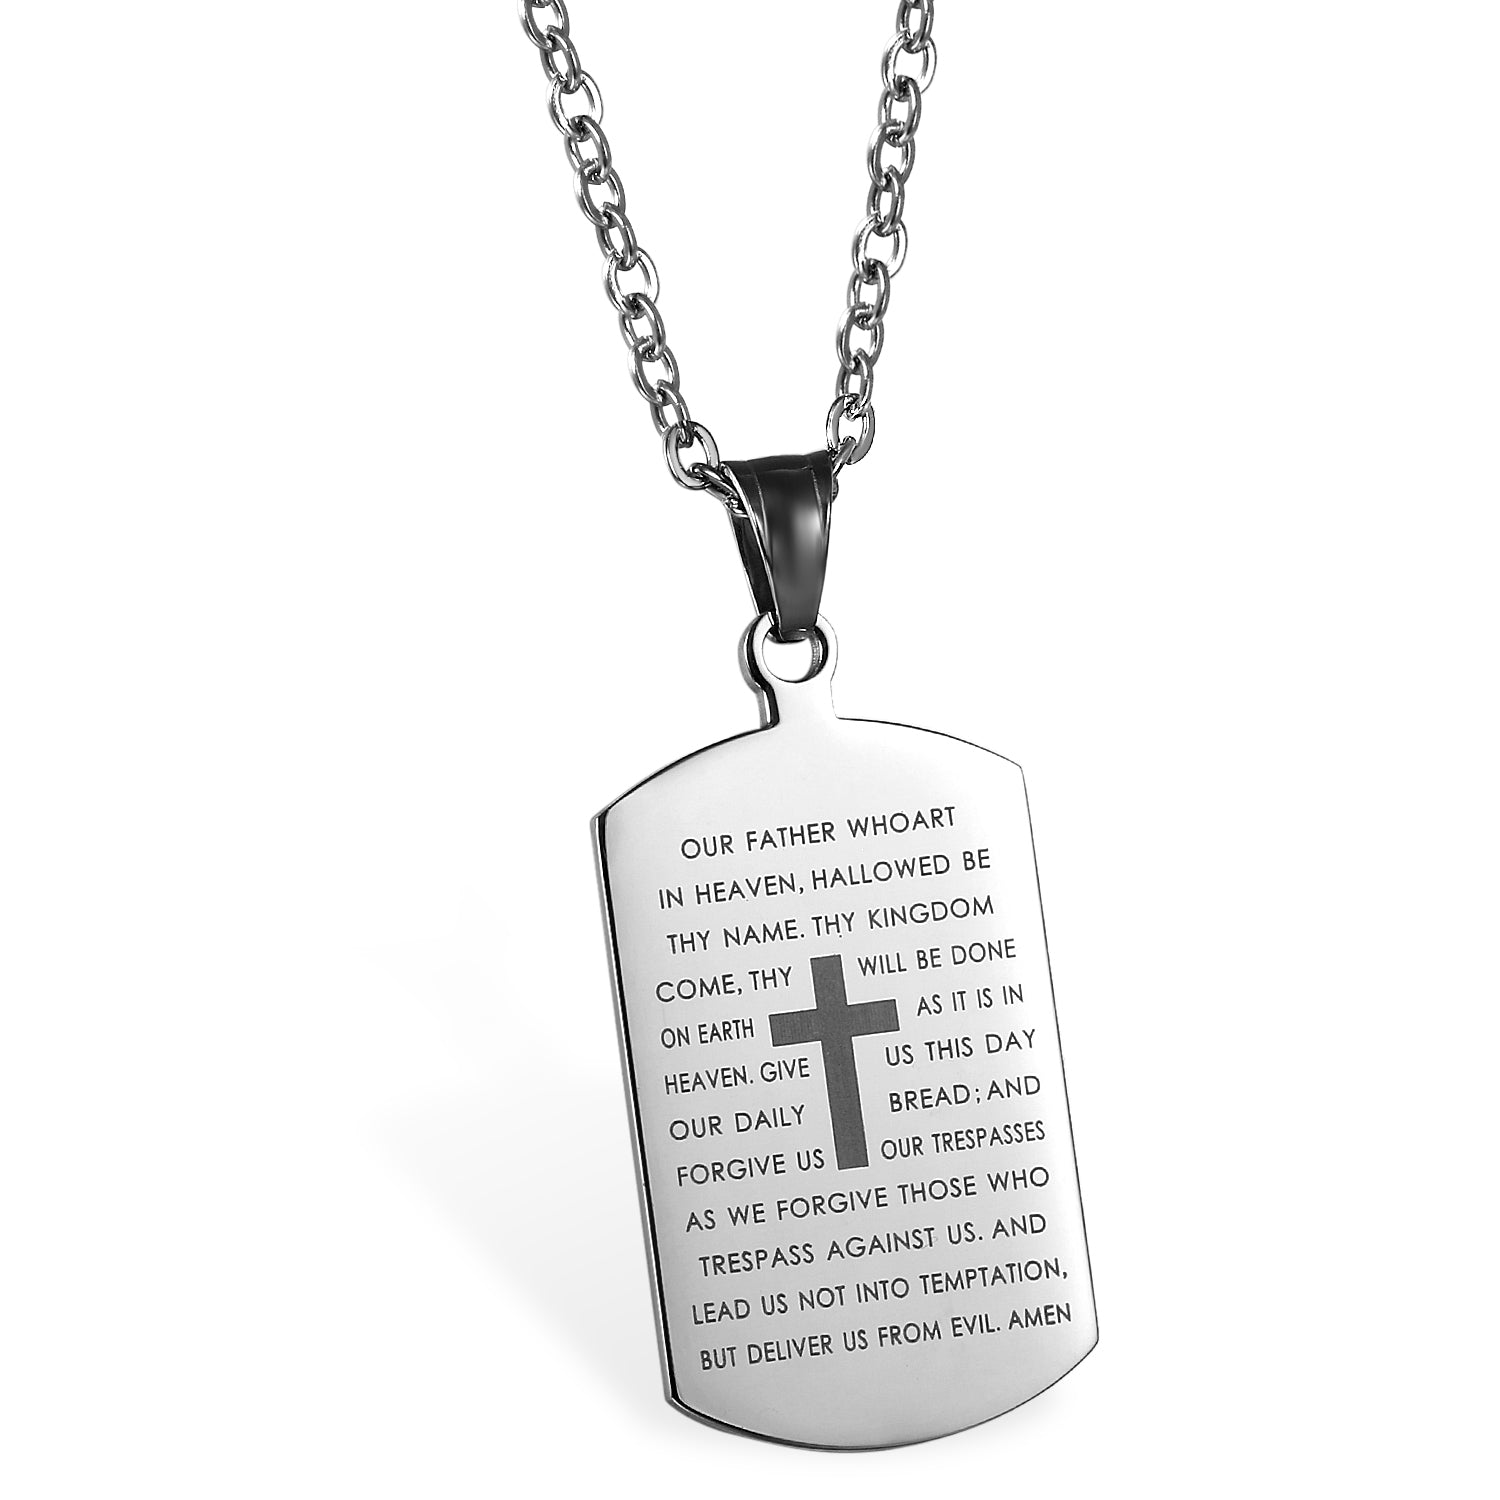 beehive products s prayer locket lord the necklace